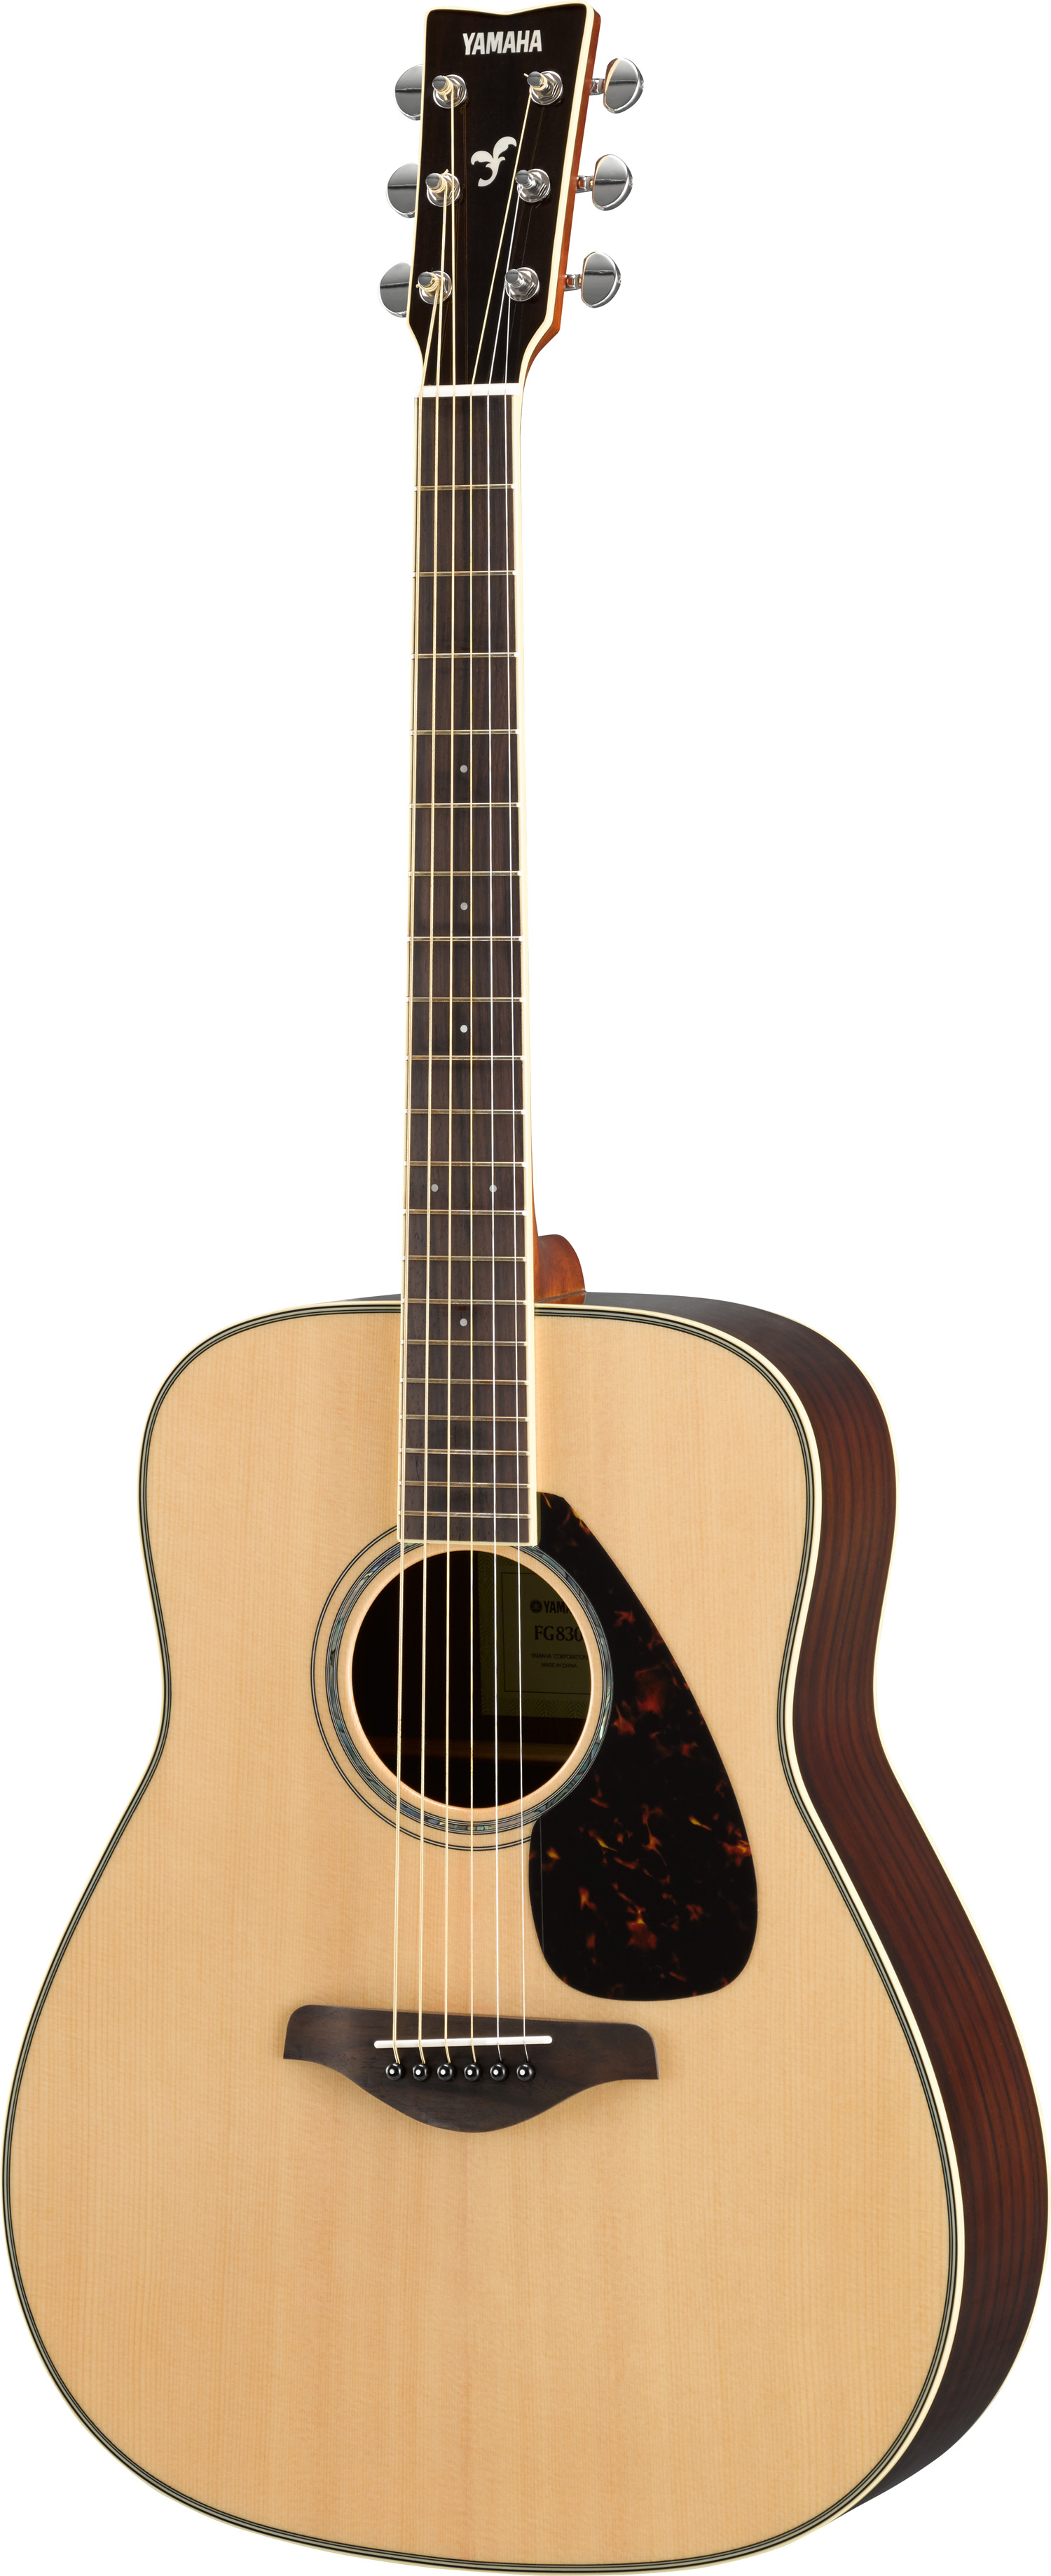 yamaha maverick beginner acoustic guitar pack featuring